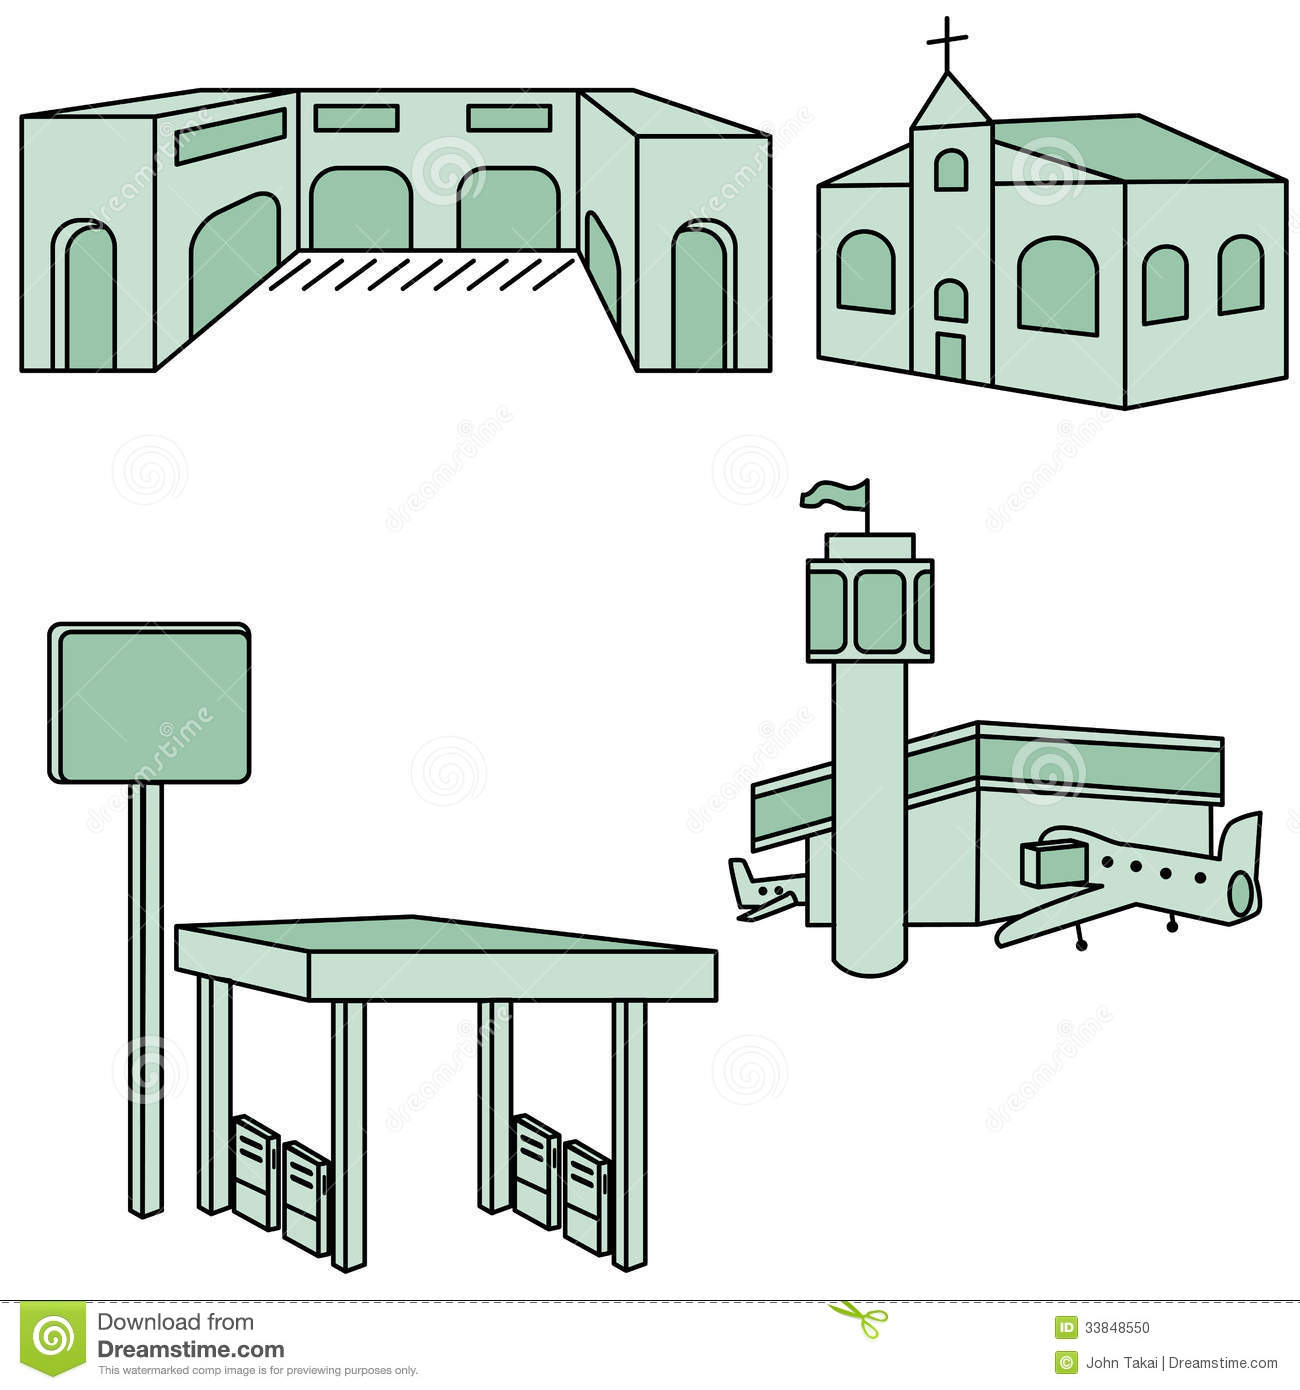 Different Types Of Buildings : Different types of buildings icons set royalty free stock